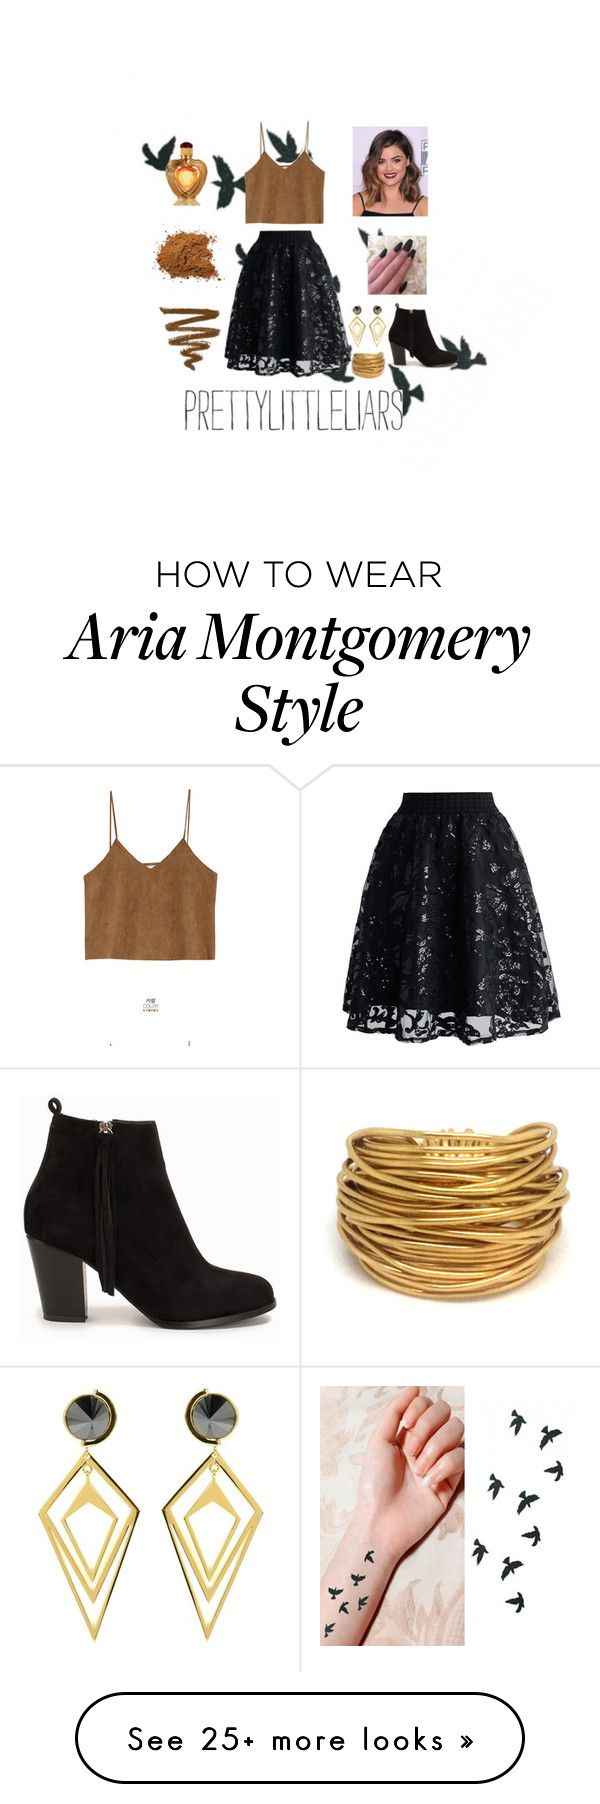 """Aria Montgomery"" by smiles-4-ever on Polyvore featuring moda, Goroke, Chicwish, Nly Shoes, Victoria's Secret, Sarah Magid y Black & Sigi"